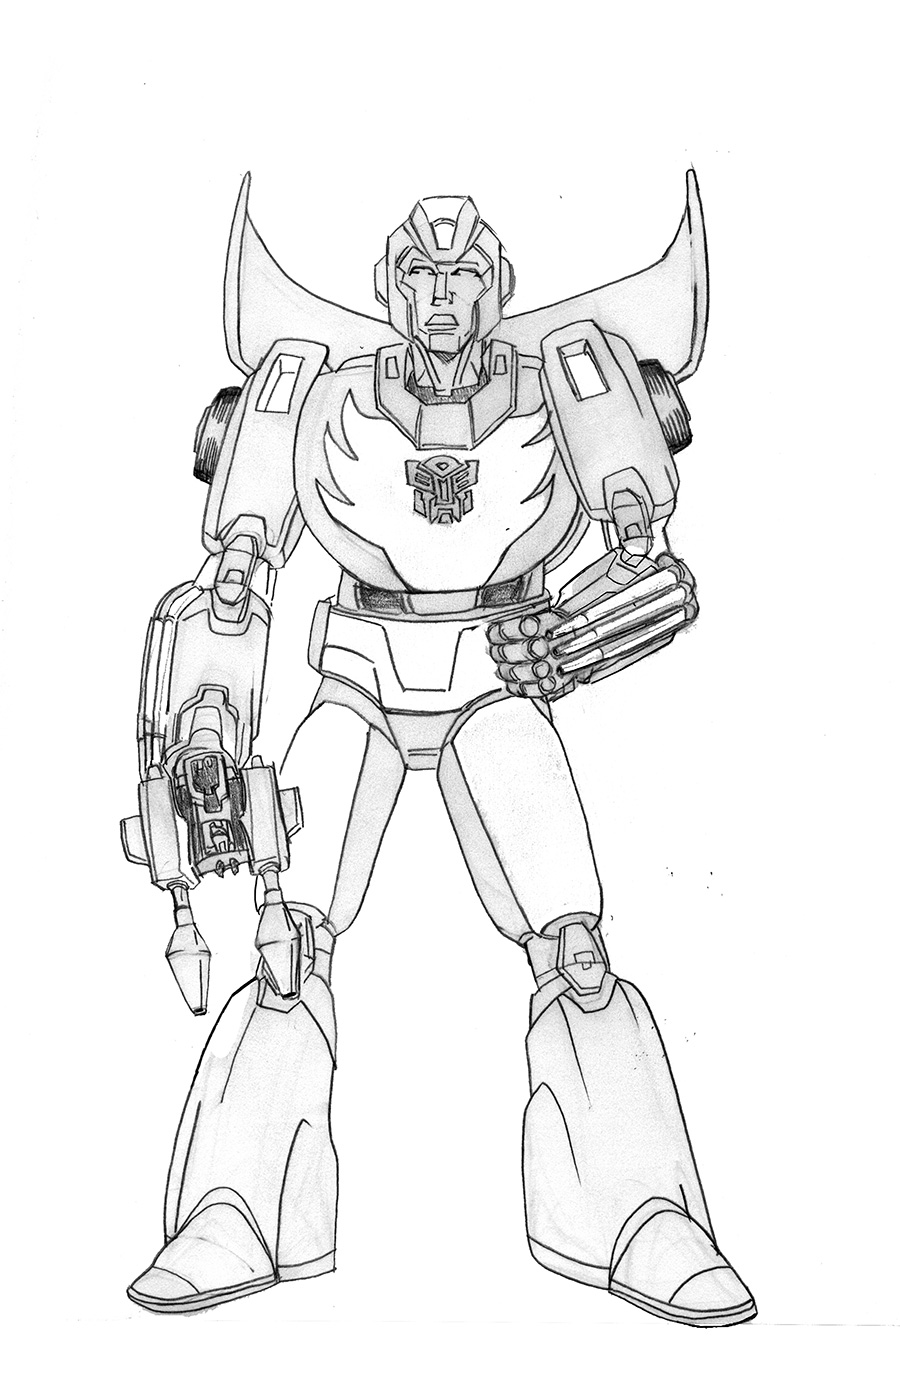 Transformers Hot Rod Coloring Pages In 2020 Coloring Pages Hot Rods Christmas Coloring Pages